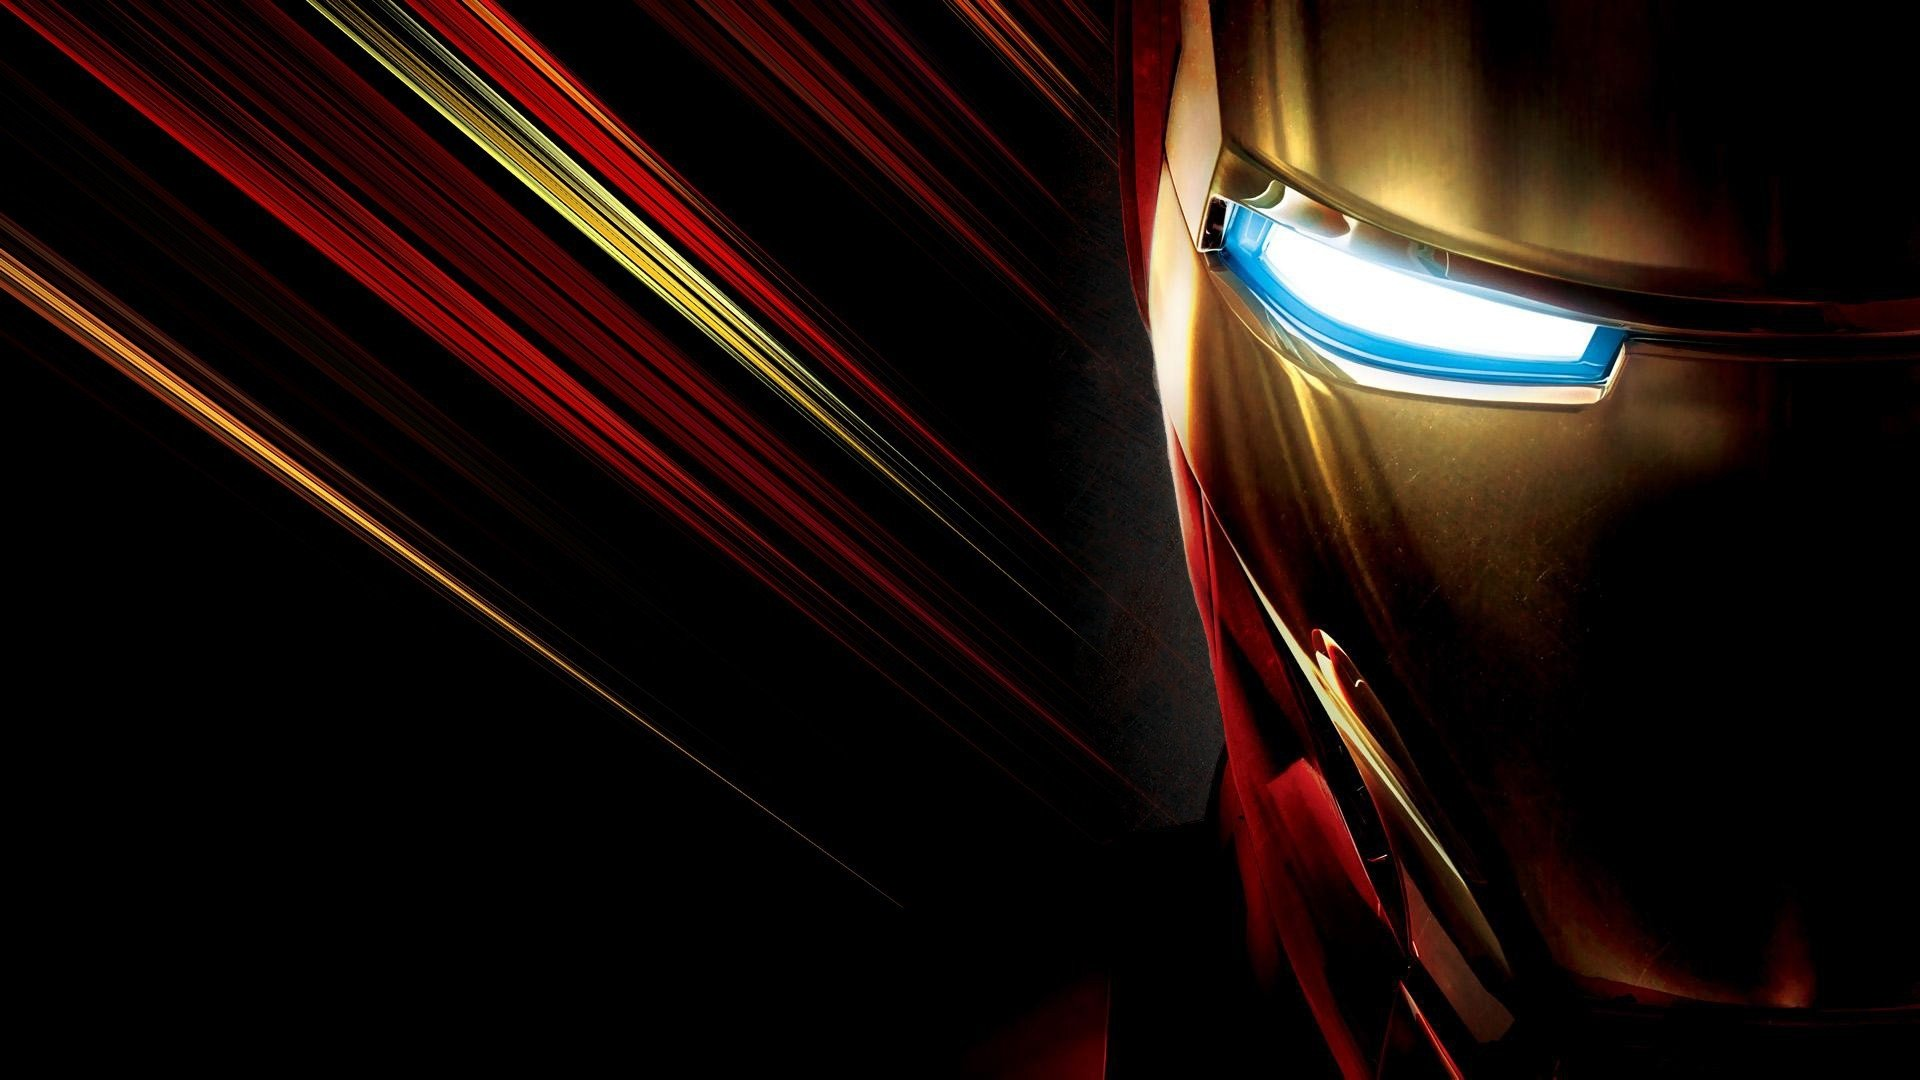 Download Iron Man Ultra Hd Wallpapers Gallery